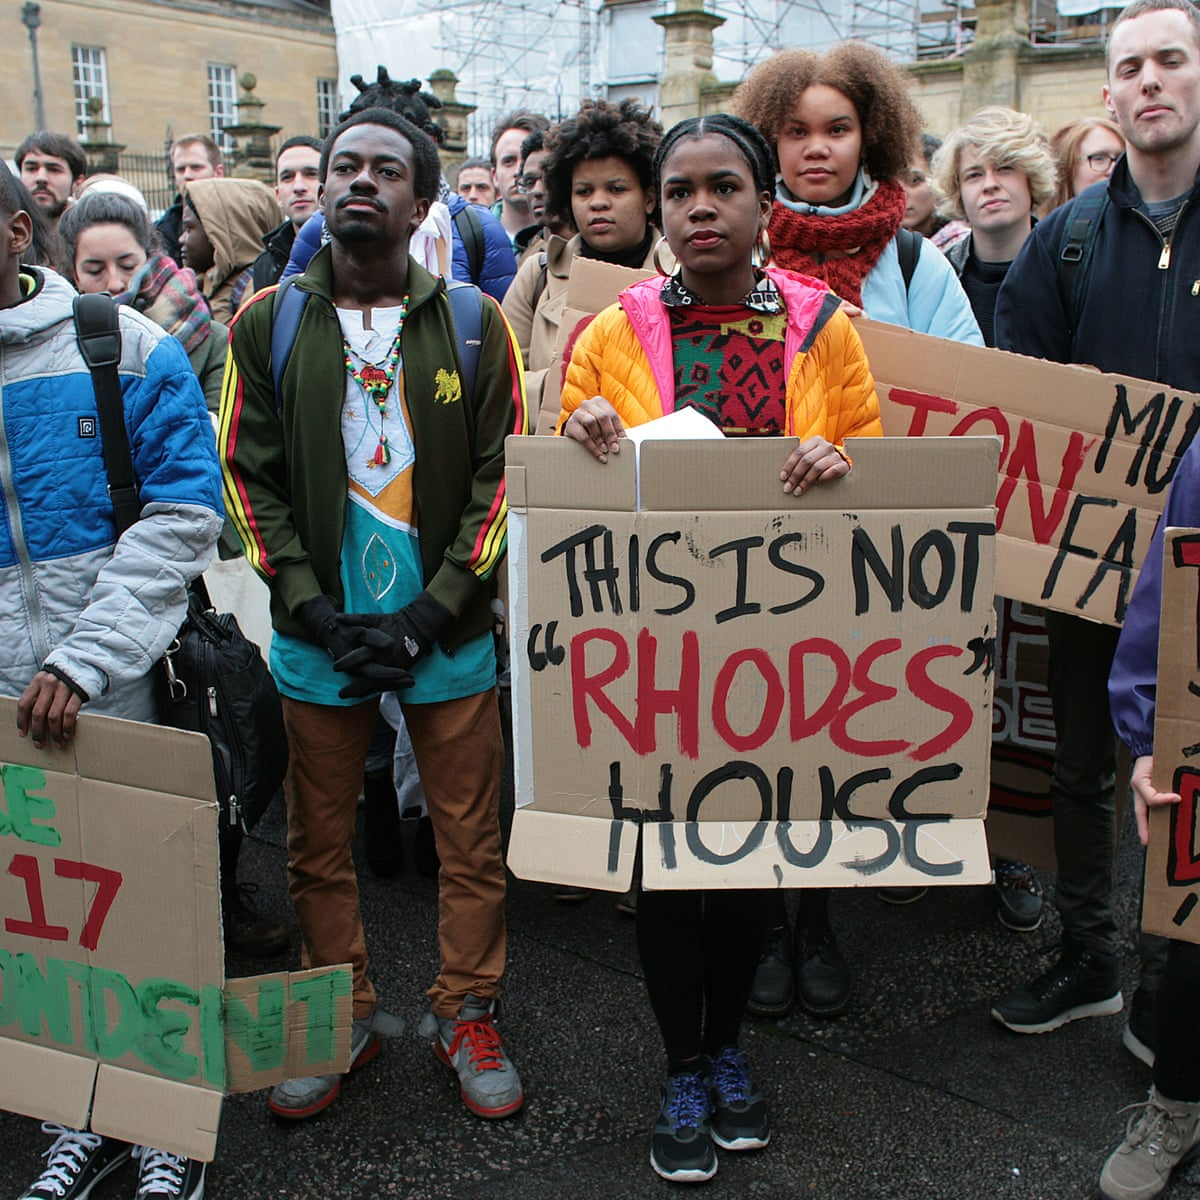 Take it down!': Rhodes Must Fall campaign marches through Oxford ...